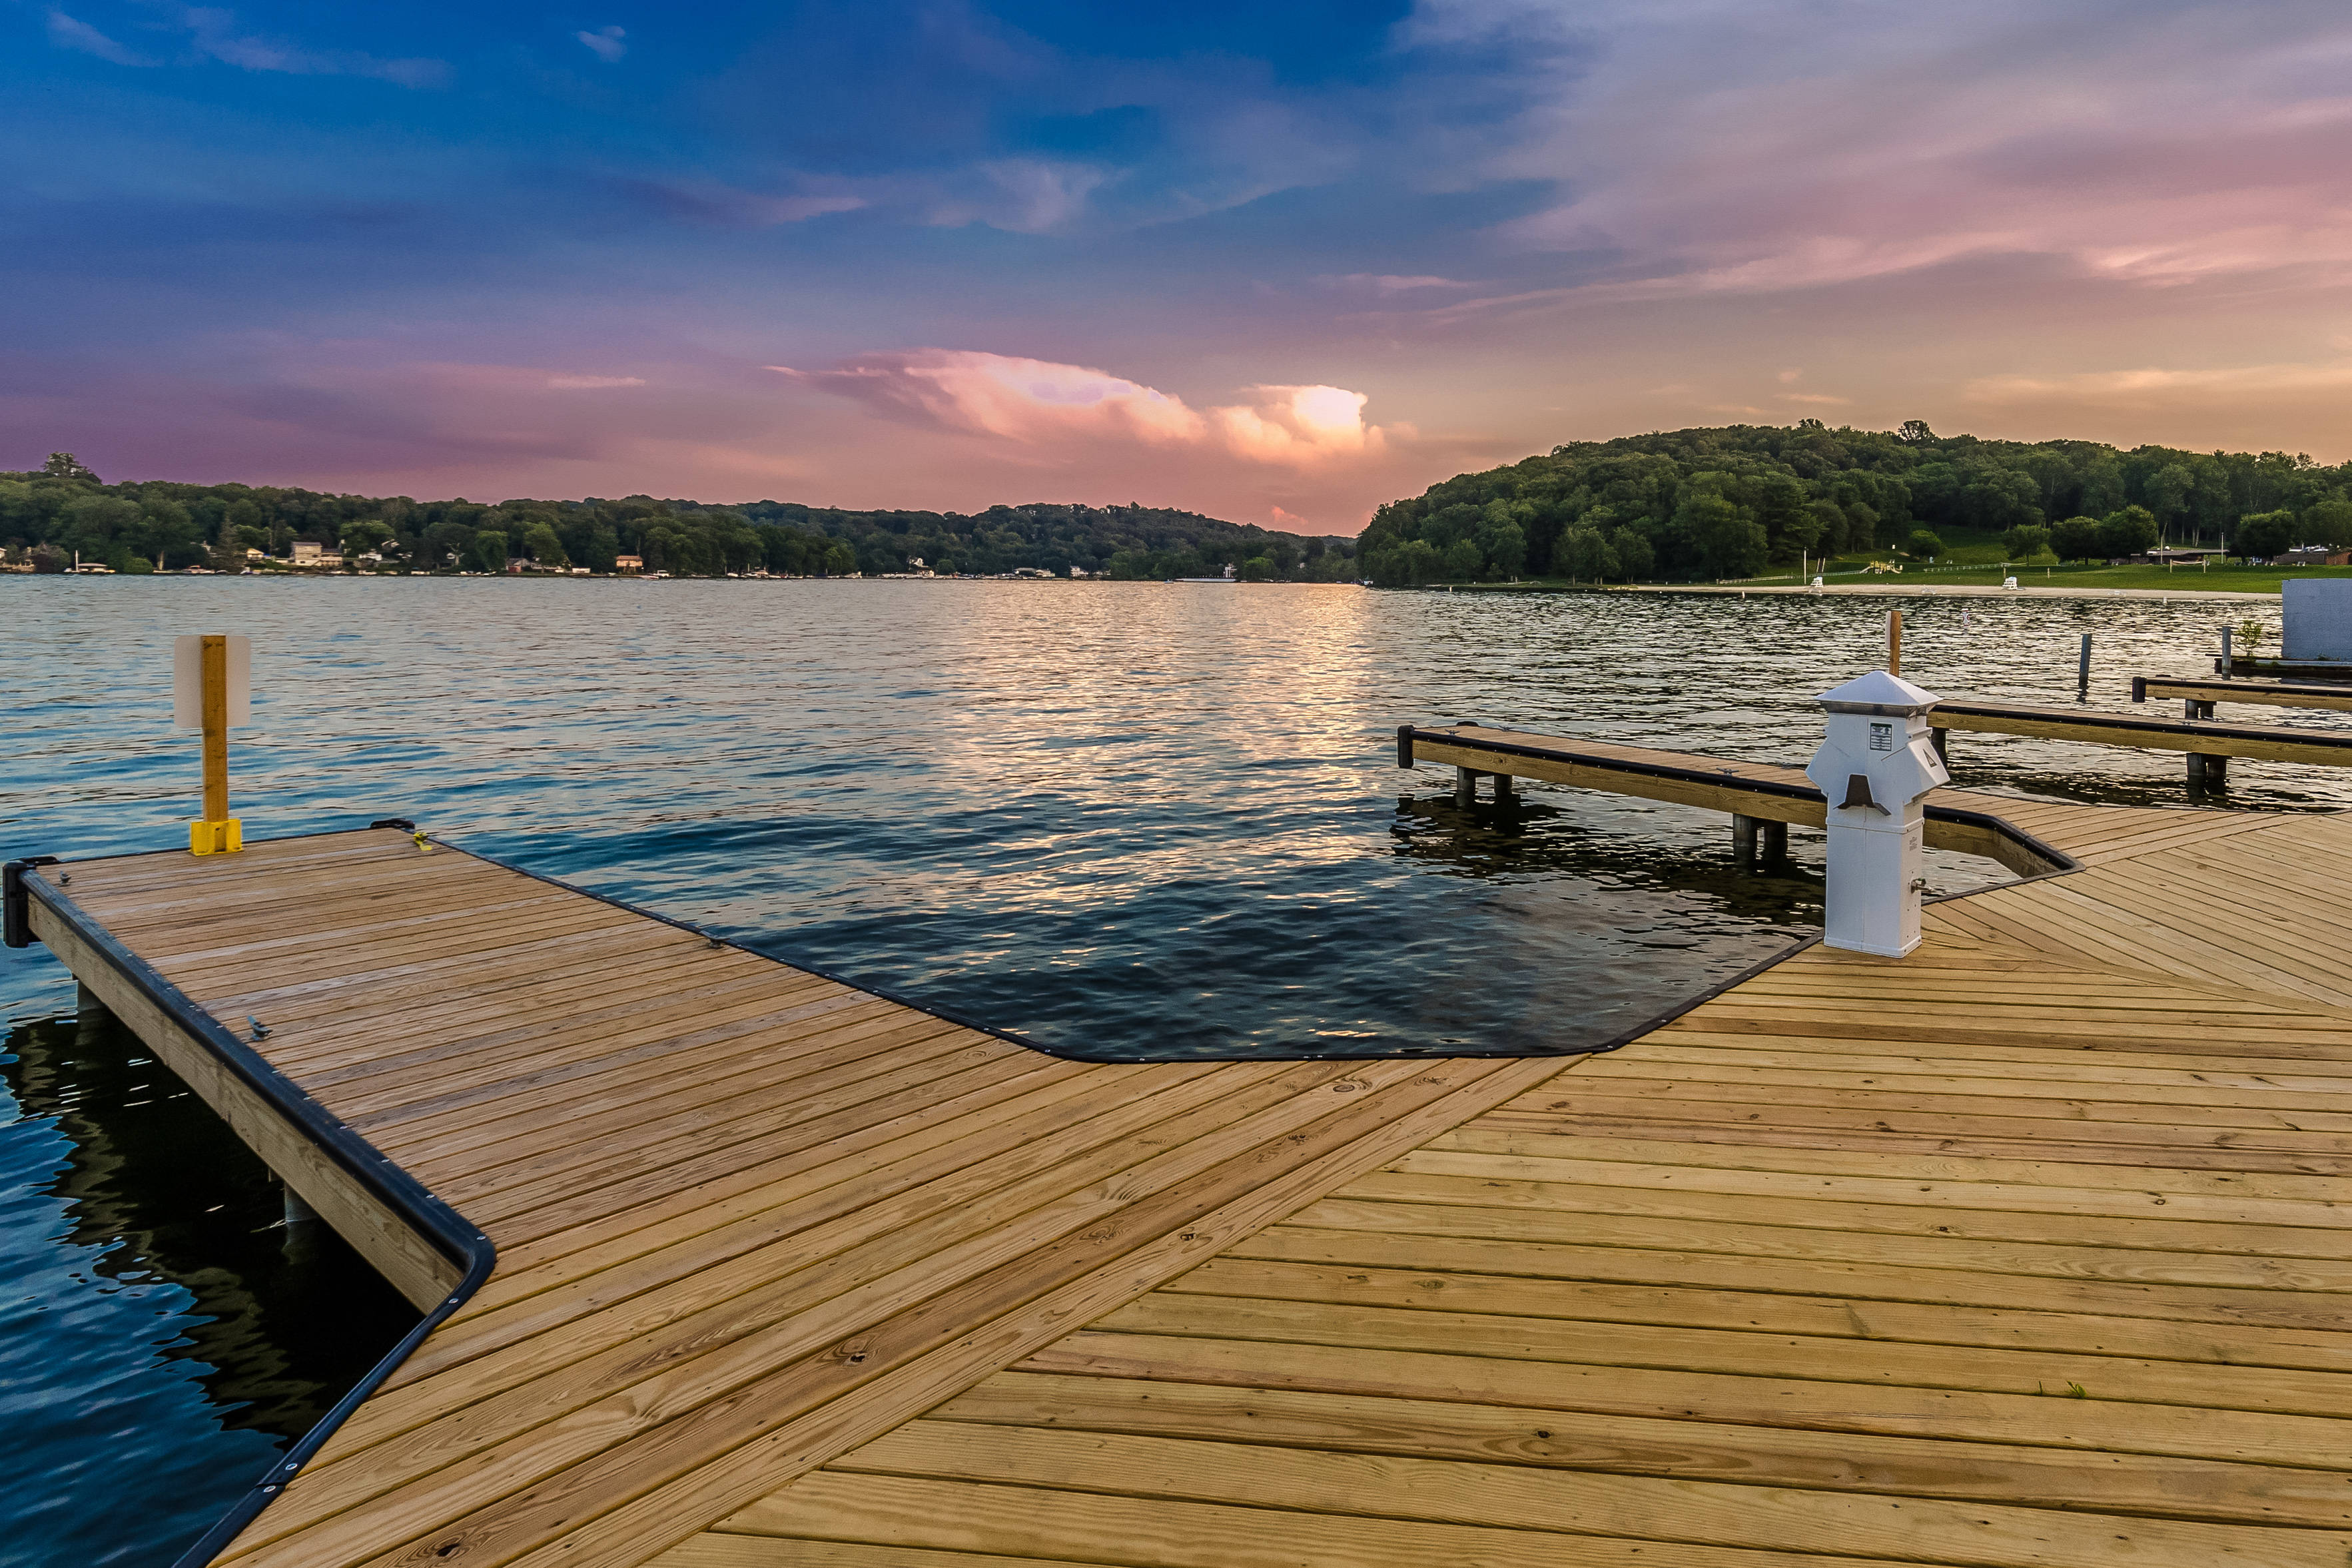 bf0c8089a5e9a0ccd212_055-Deeded_boat_slips_at_dusk-4586959-large__1_.jpg